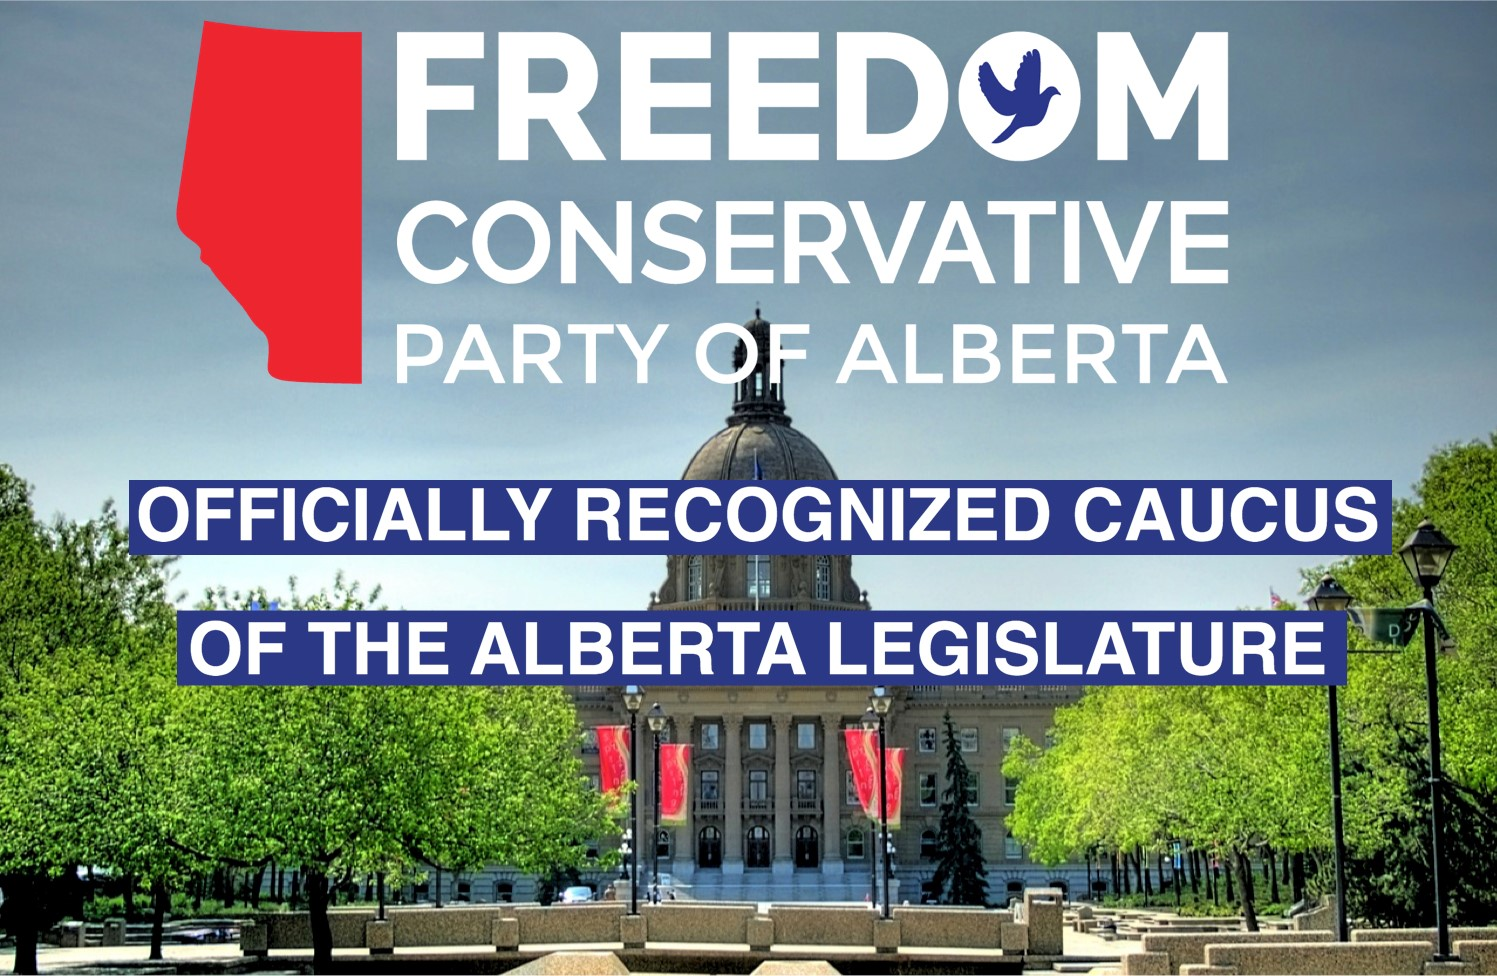 Freedom Conservative Party recognized by the Legislative Assembly of Alberta